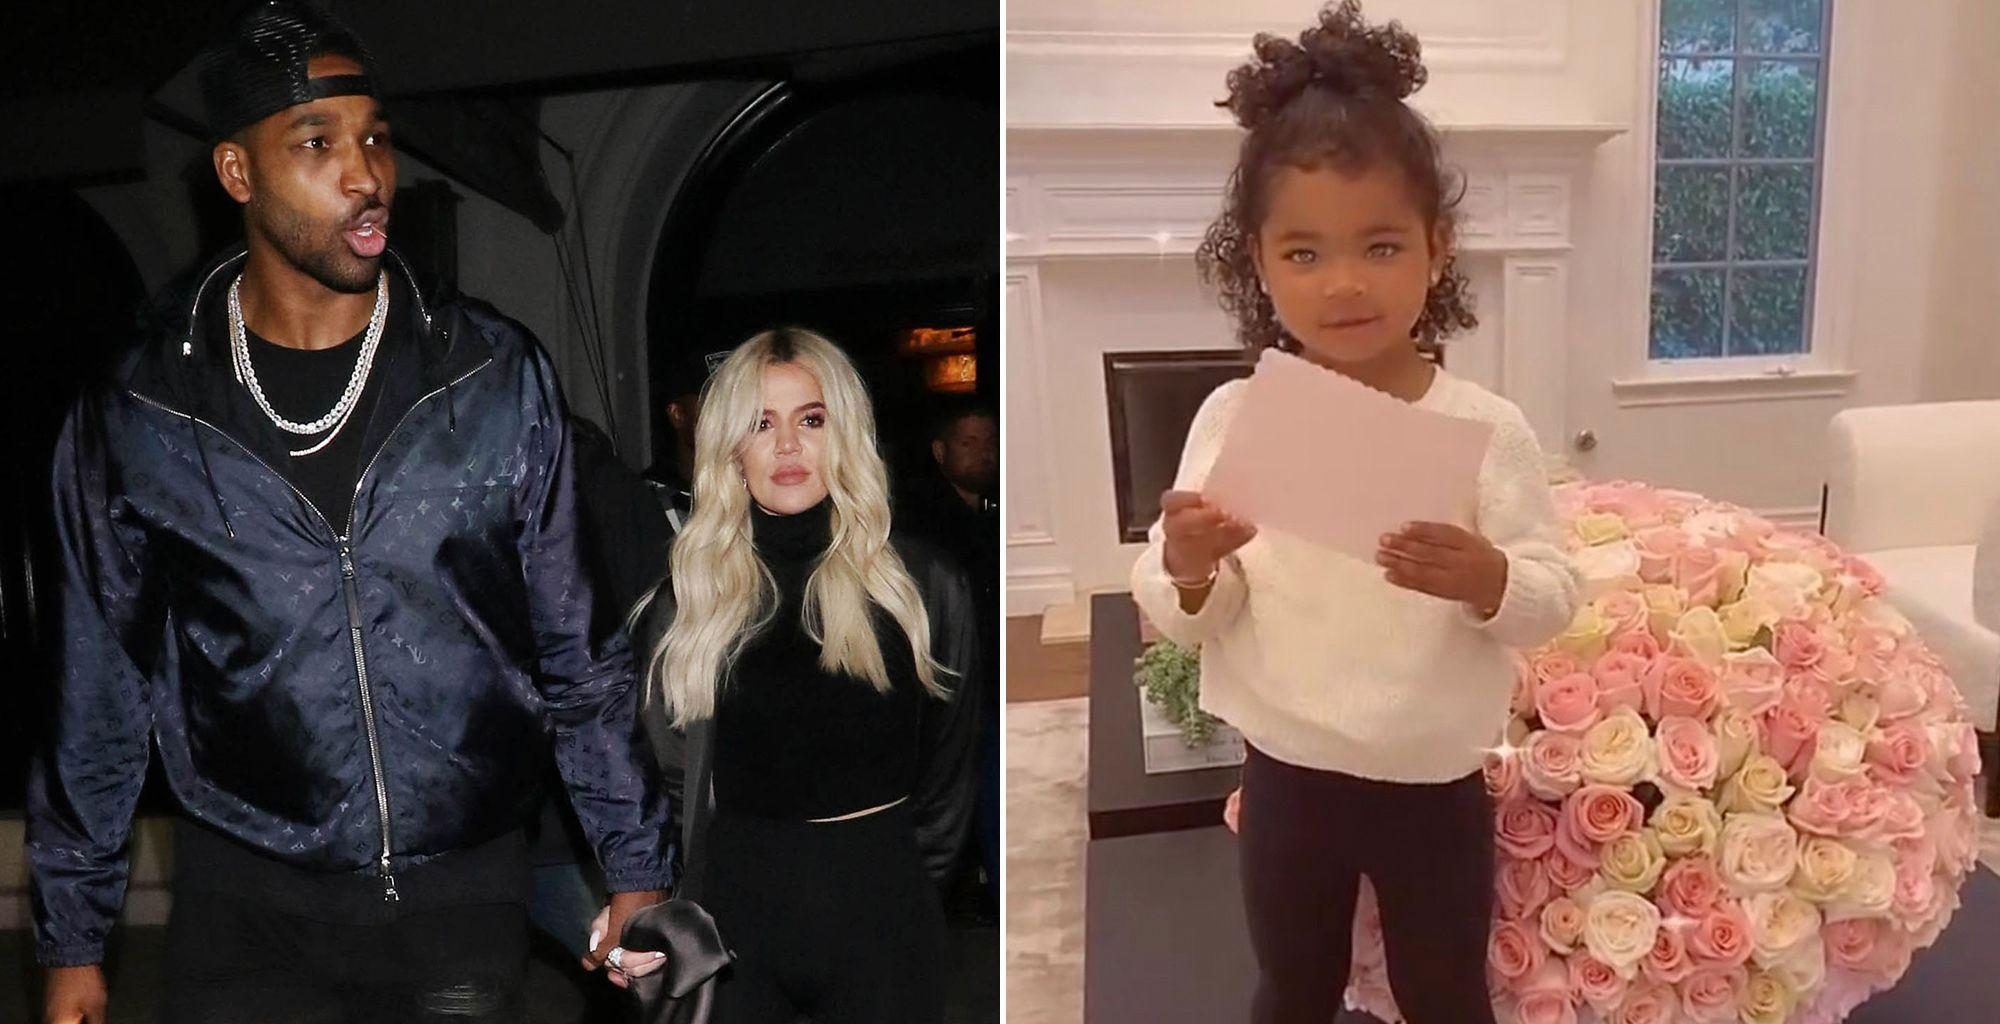 KUWTK: Tristan Thompson Is Not Going To Let The Distance Come Between Him And Khloe Kardashian After Signing With The Boston Celtics - Details!